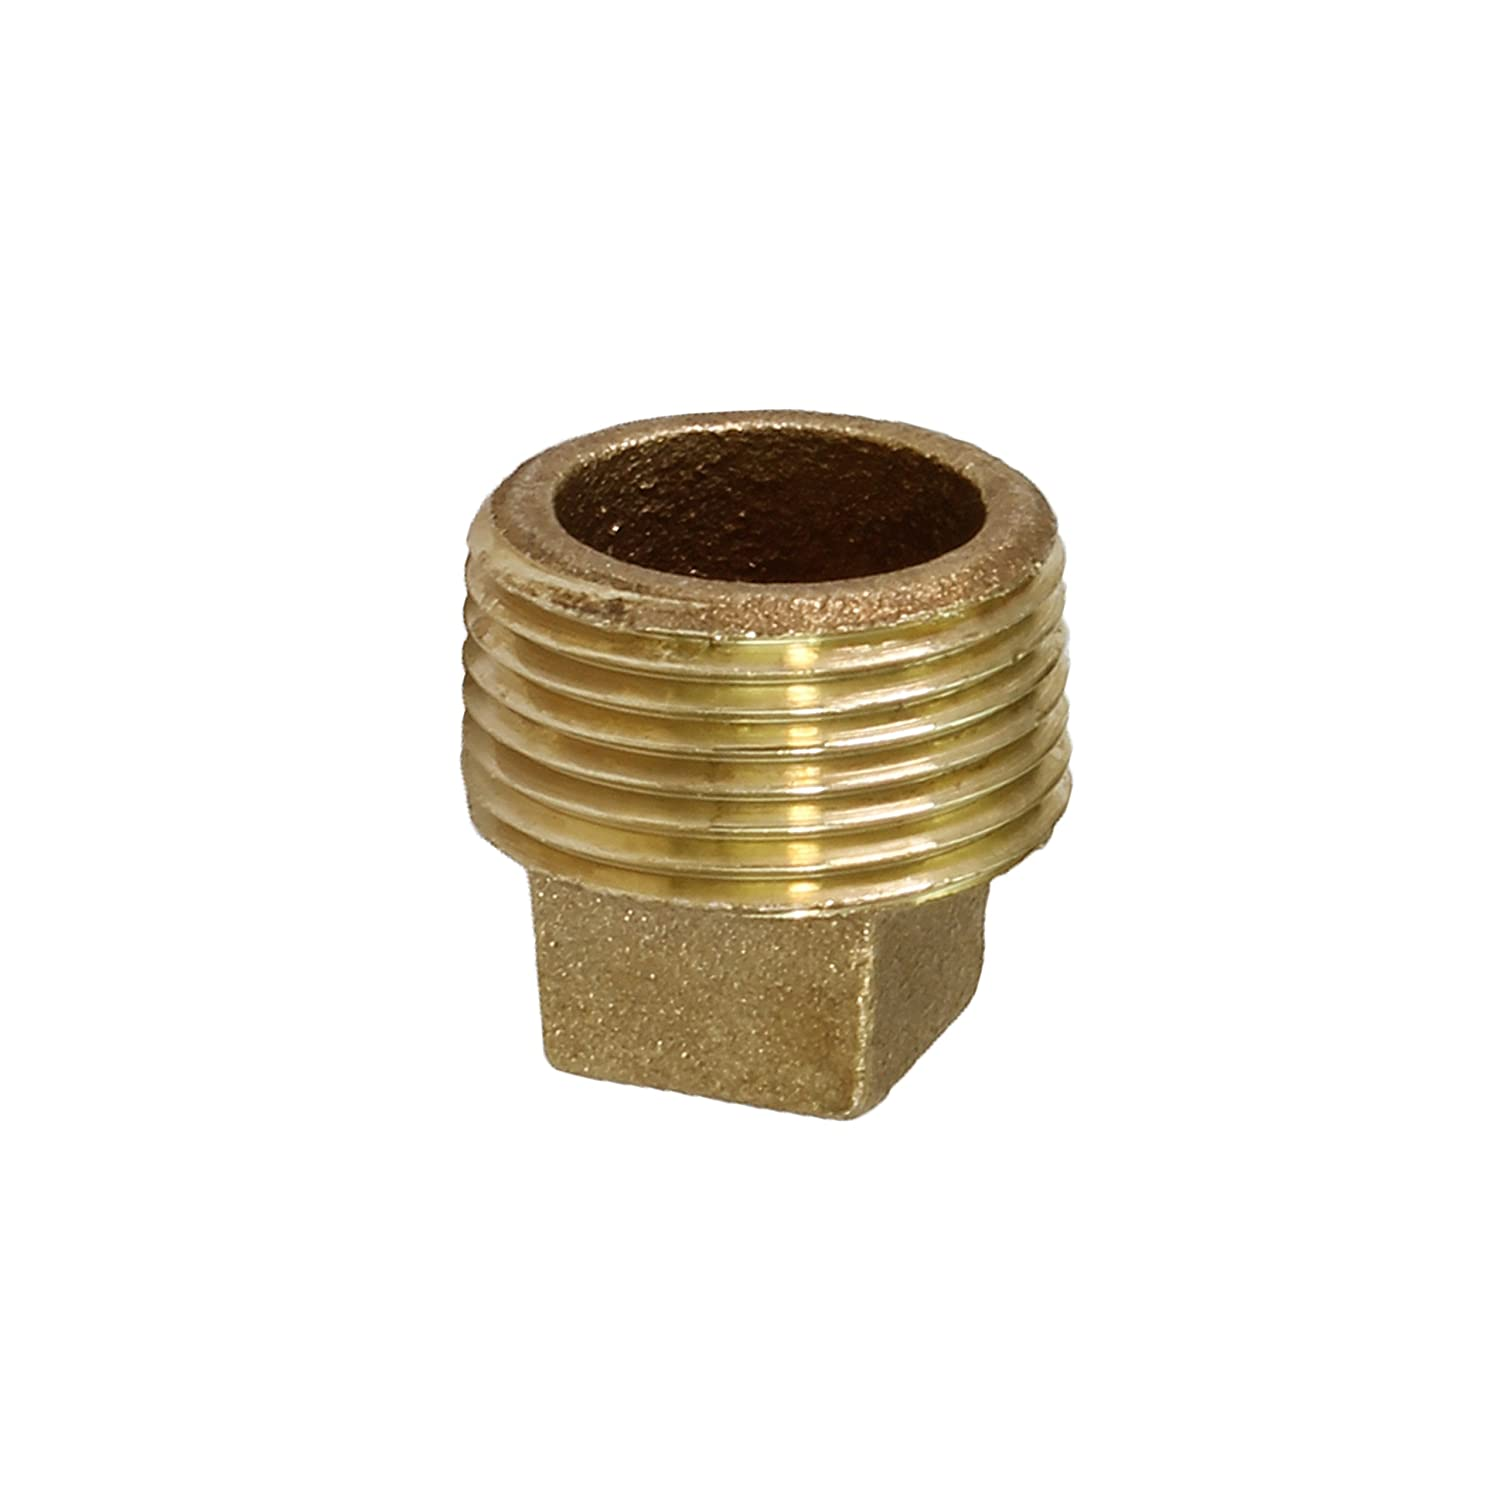 Everflow BRSP0114-NL 1-1//4-Inch Male National Pipe Taper Threads Brass Solid Plug with Square Head Higher Corrosion Resistance Economical /& Easy to Install Lead Free Brass Pipe Fitting